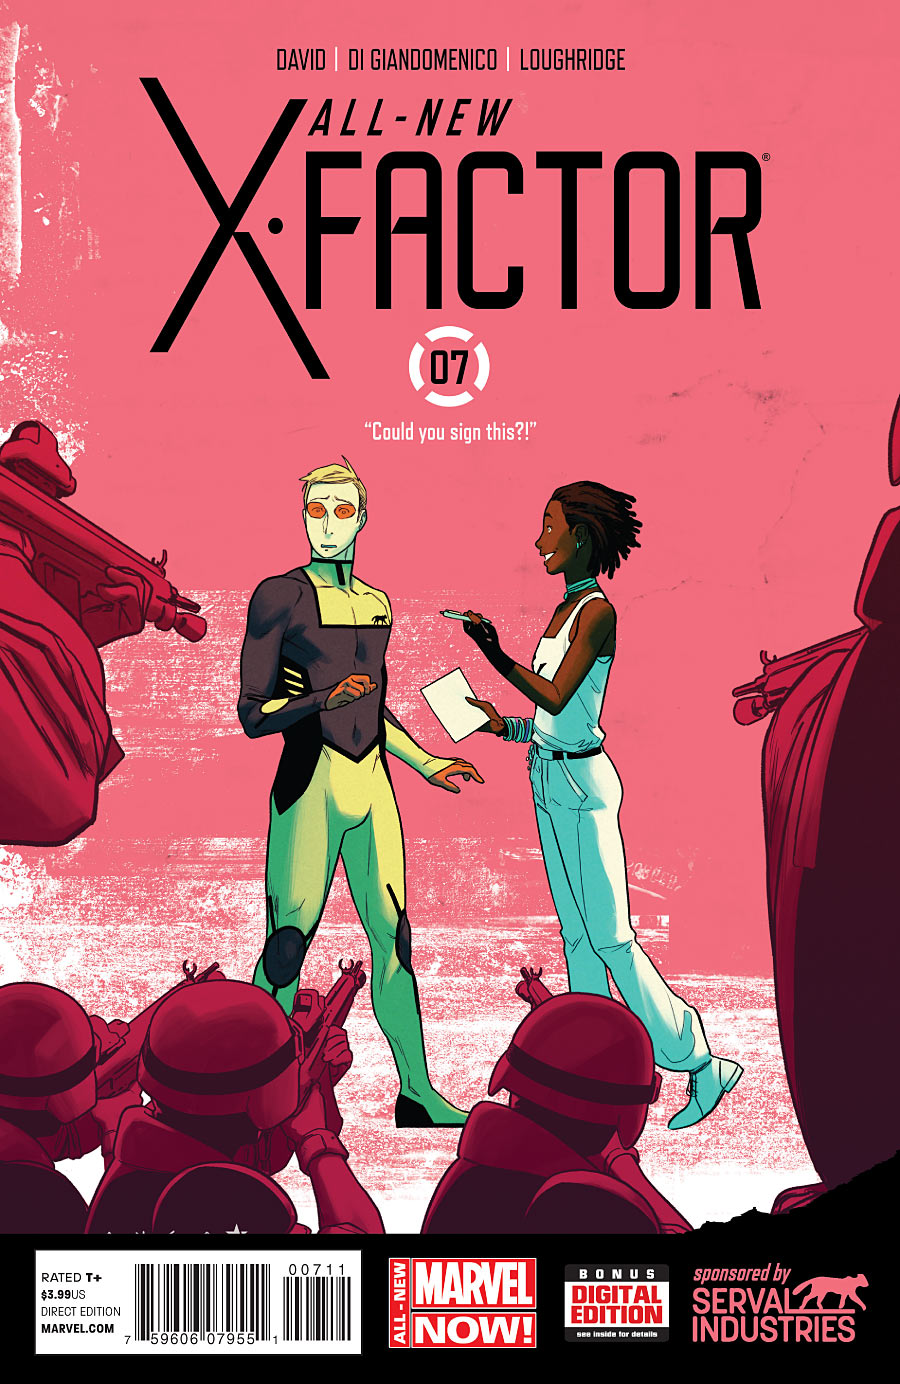 All-New X-Factor #7